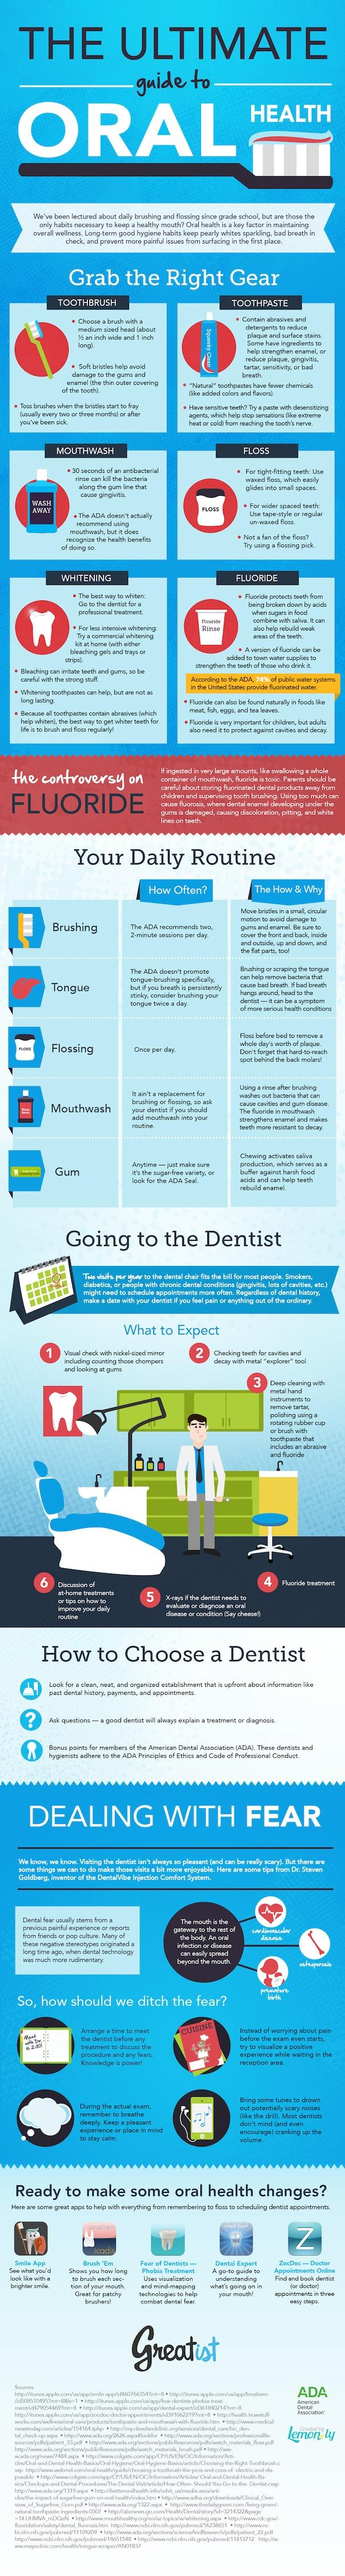 The Ultimate Guide To Oral Health